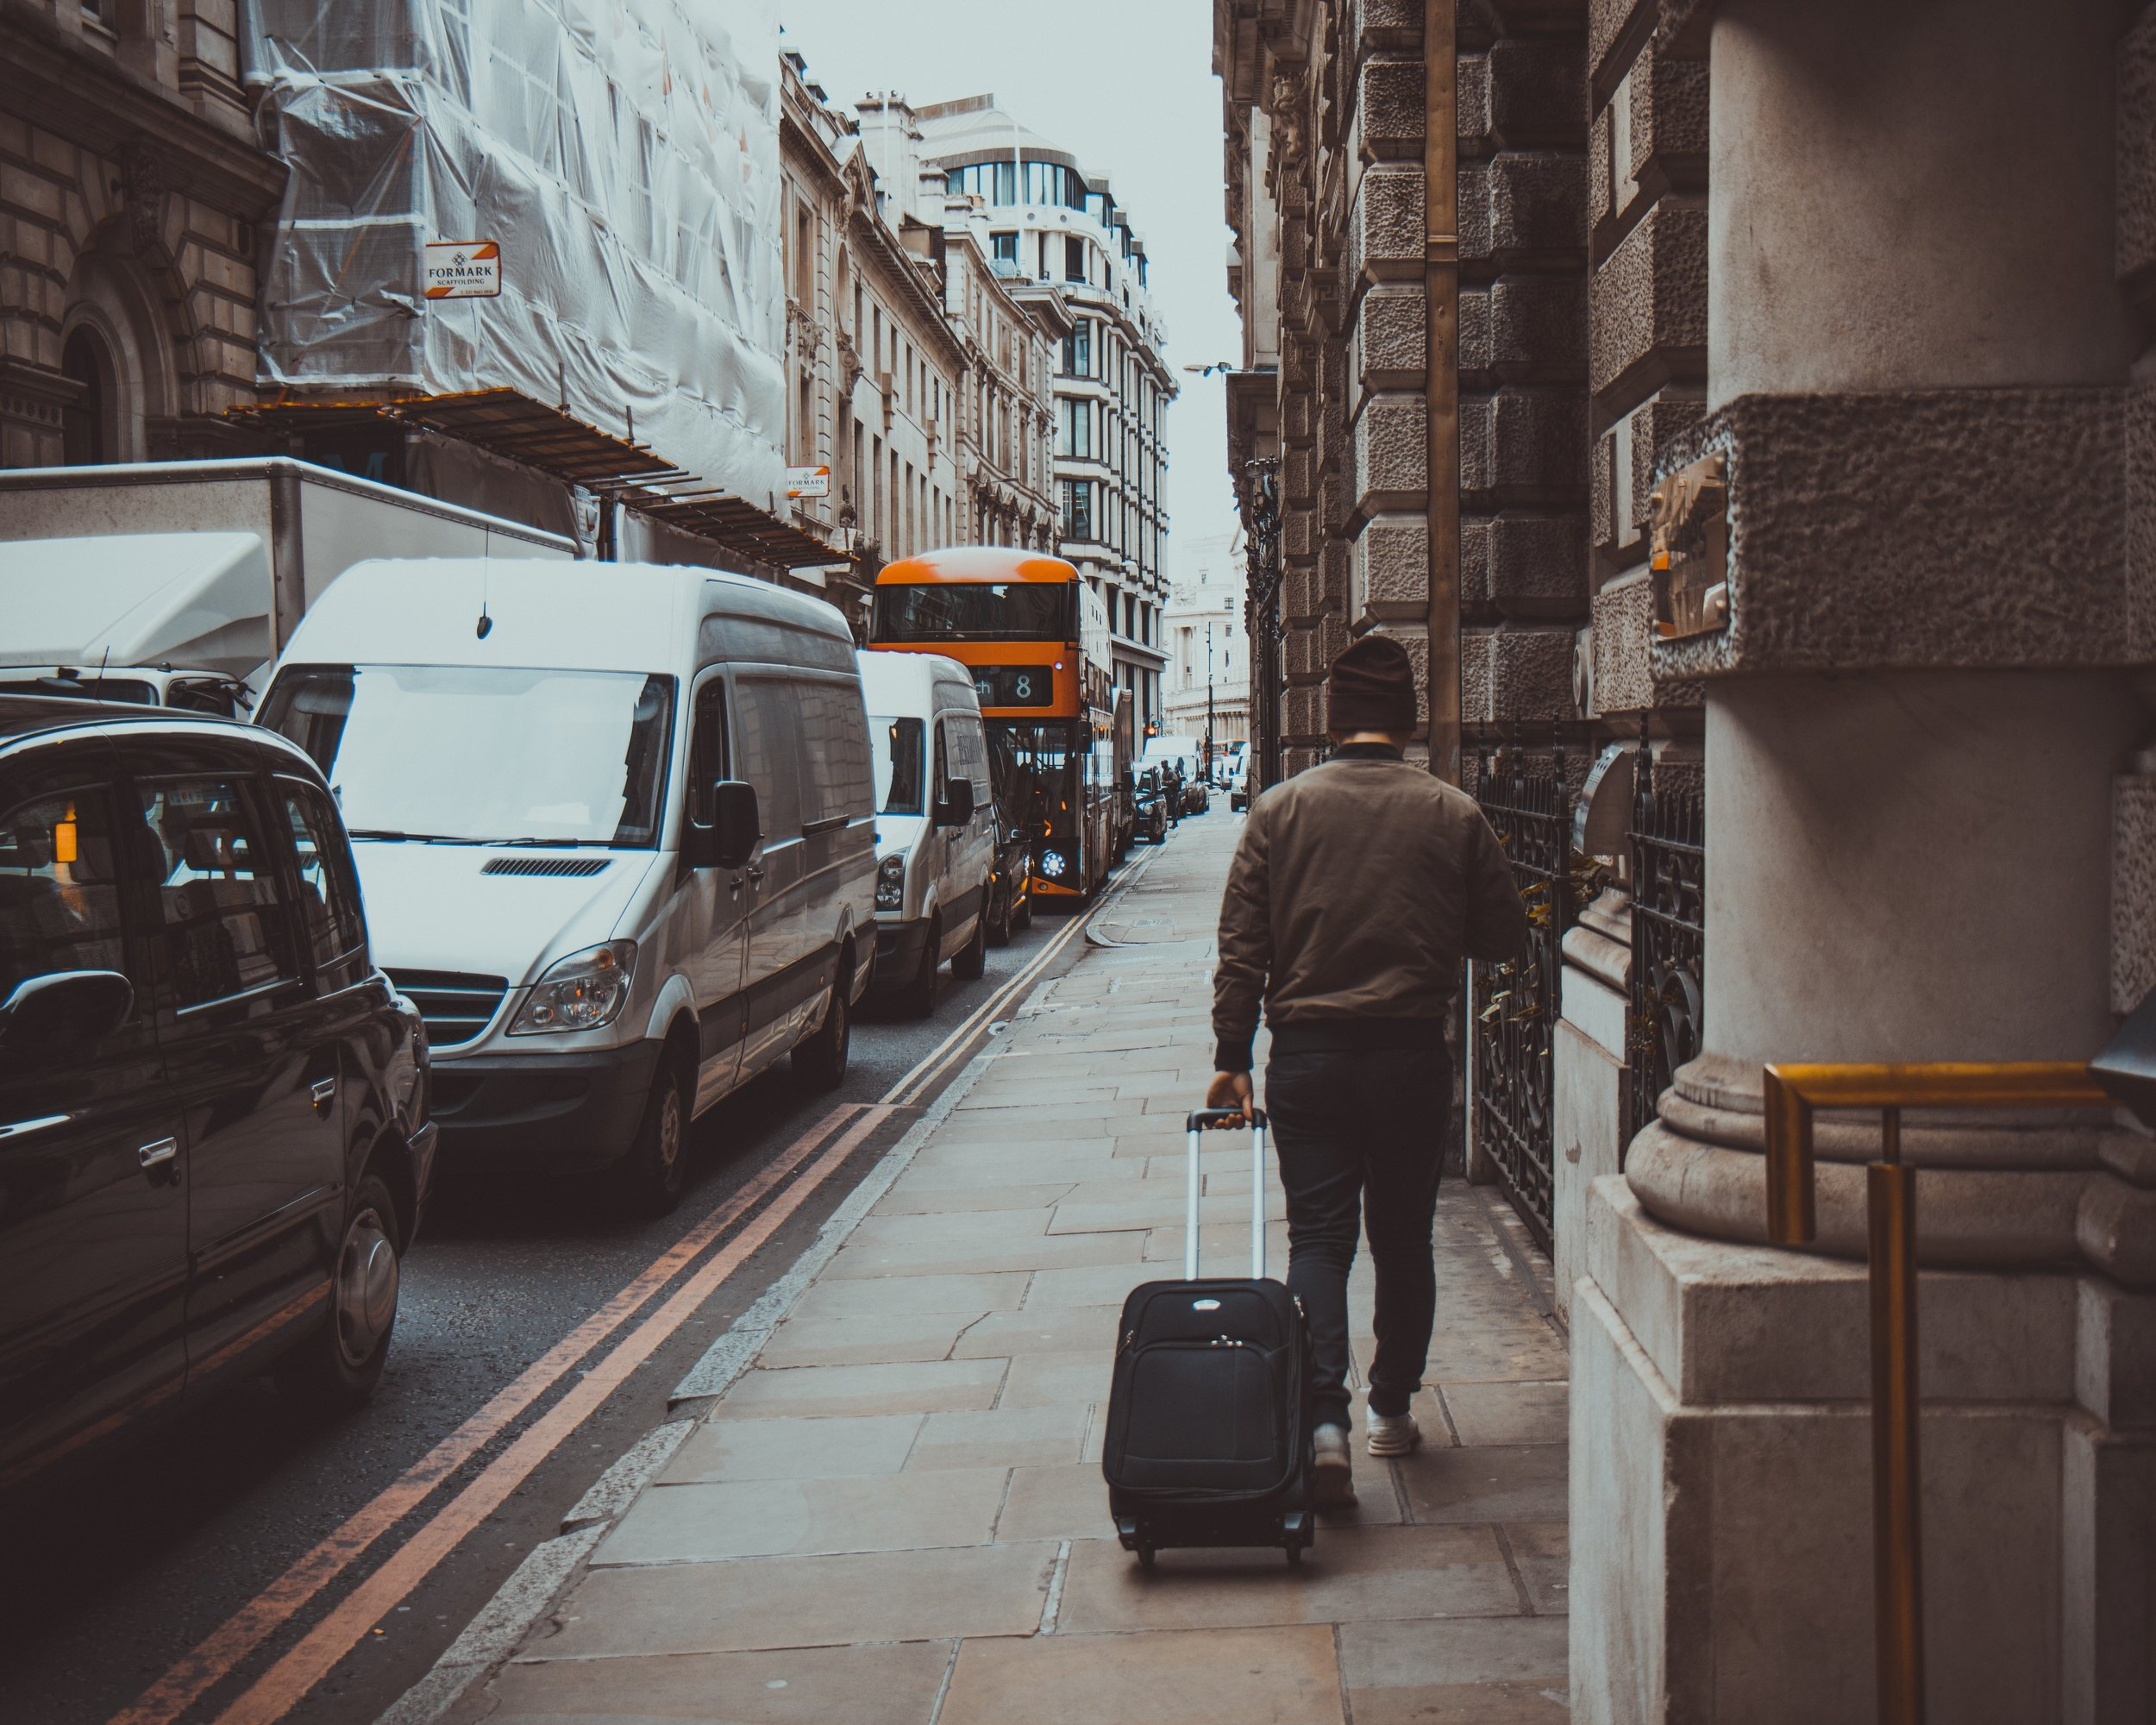 Man walking through the city with suitcase. Photo source Tomáš Gal on Pexels.